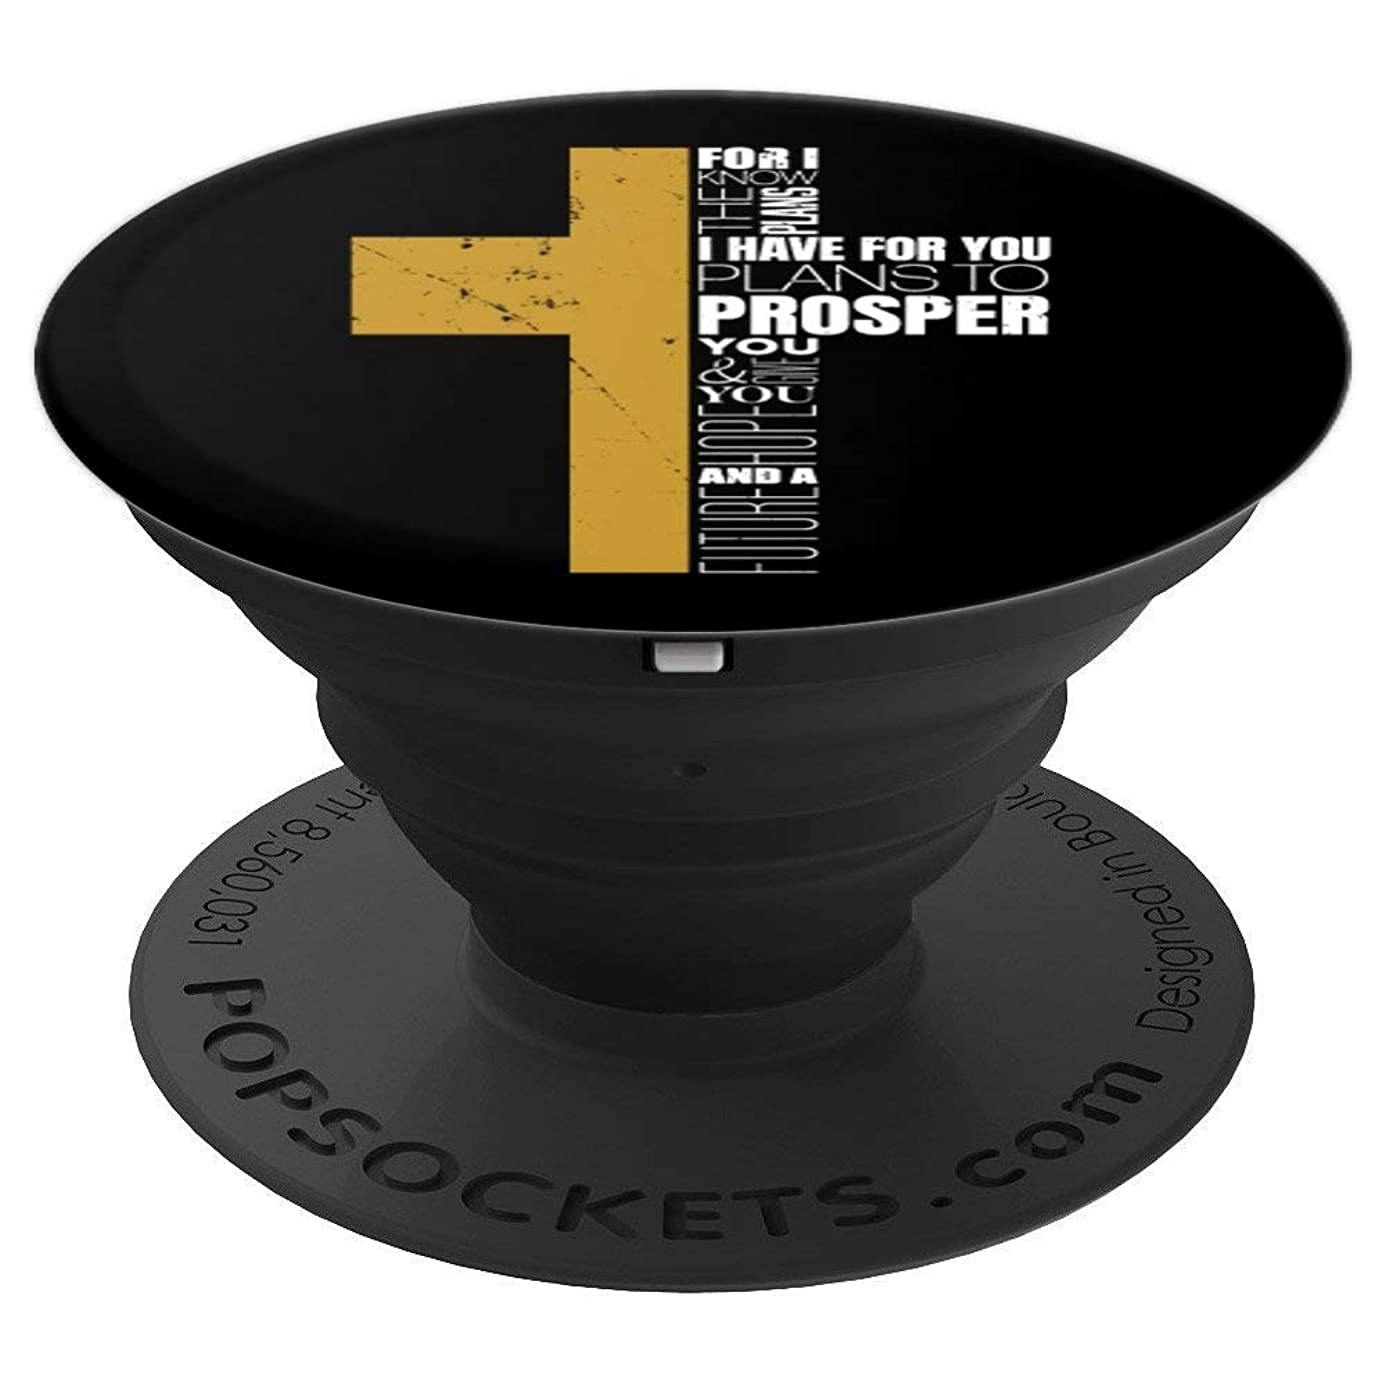 Jeremiah 29:11 Christian Cross Bible Verse Gifts Men Him - PopSockets Grip and Stand for Phones and Tablets oao5579162